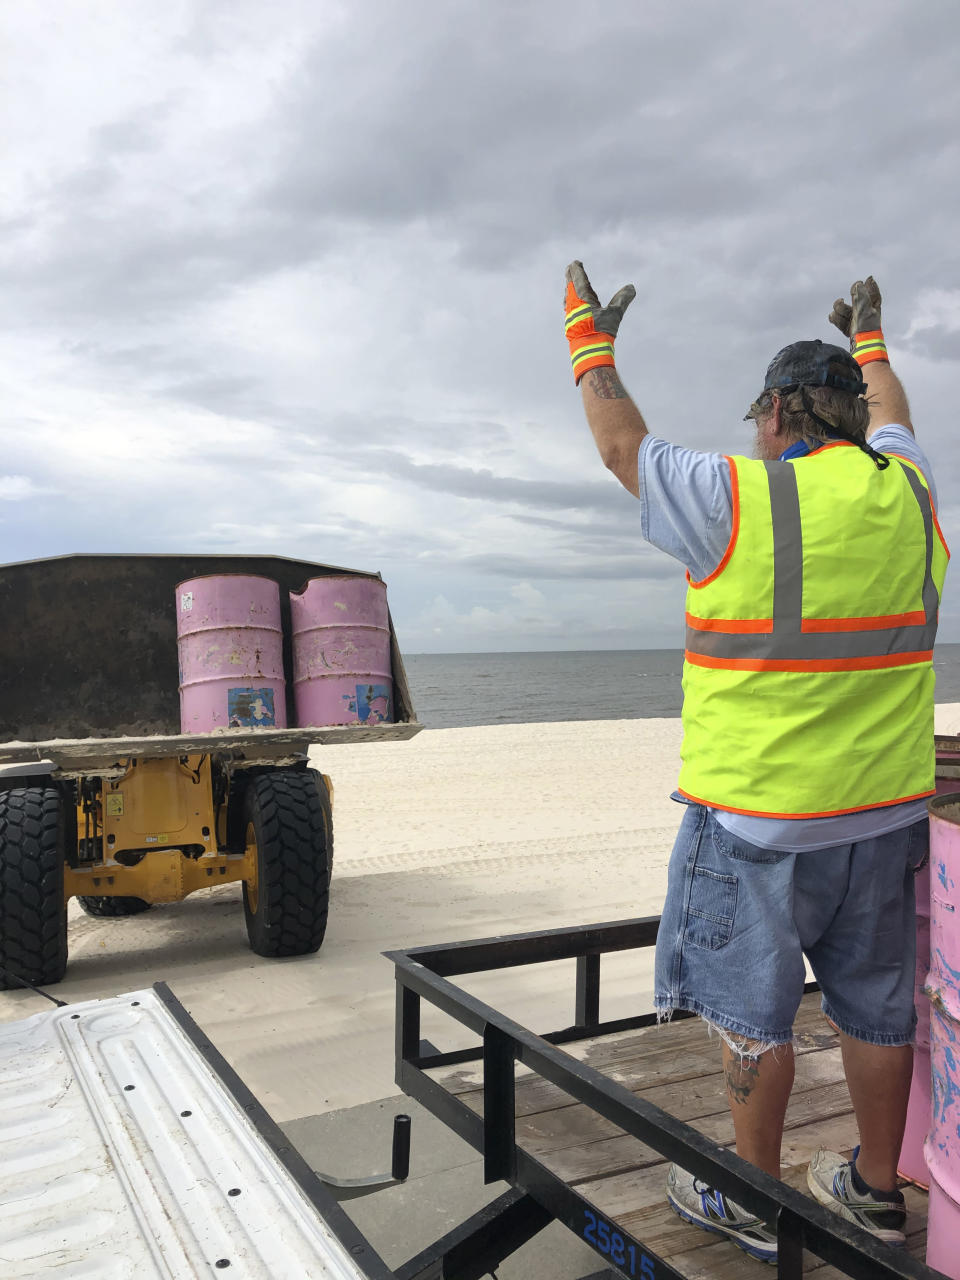 In a photo provided by the Harrison County Board of Supervisors, Harrison County Sand Beach crews remove trash cans from the Harrison County Sand Beach in Gulfport, Miss., Sunday, Aug. 23, 2020, in preparation for Hurricane Marco. (Pat Sullivan via Harrison County Board of Supervisors via AP)